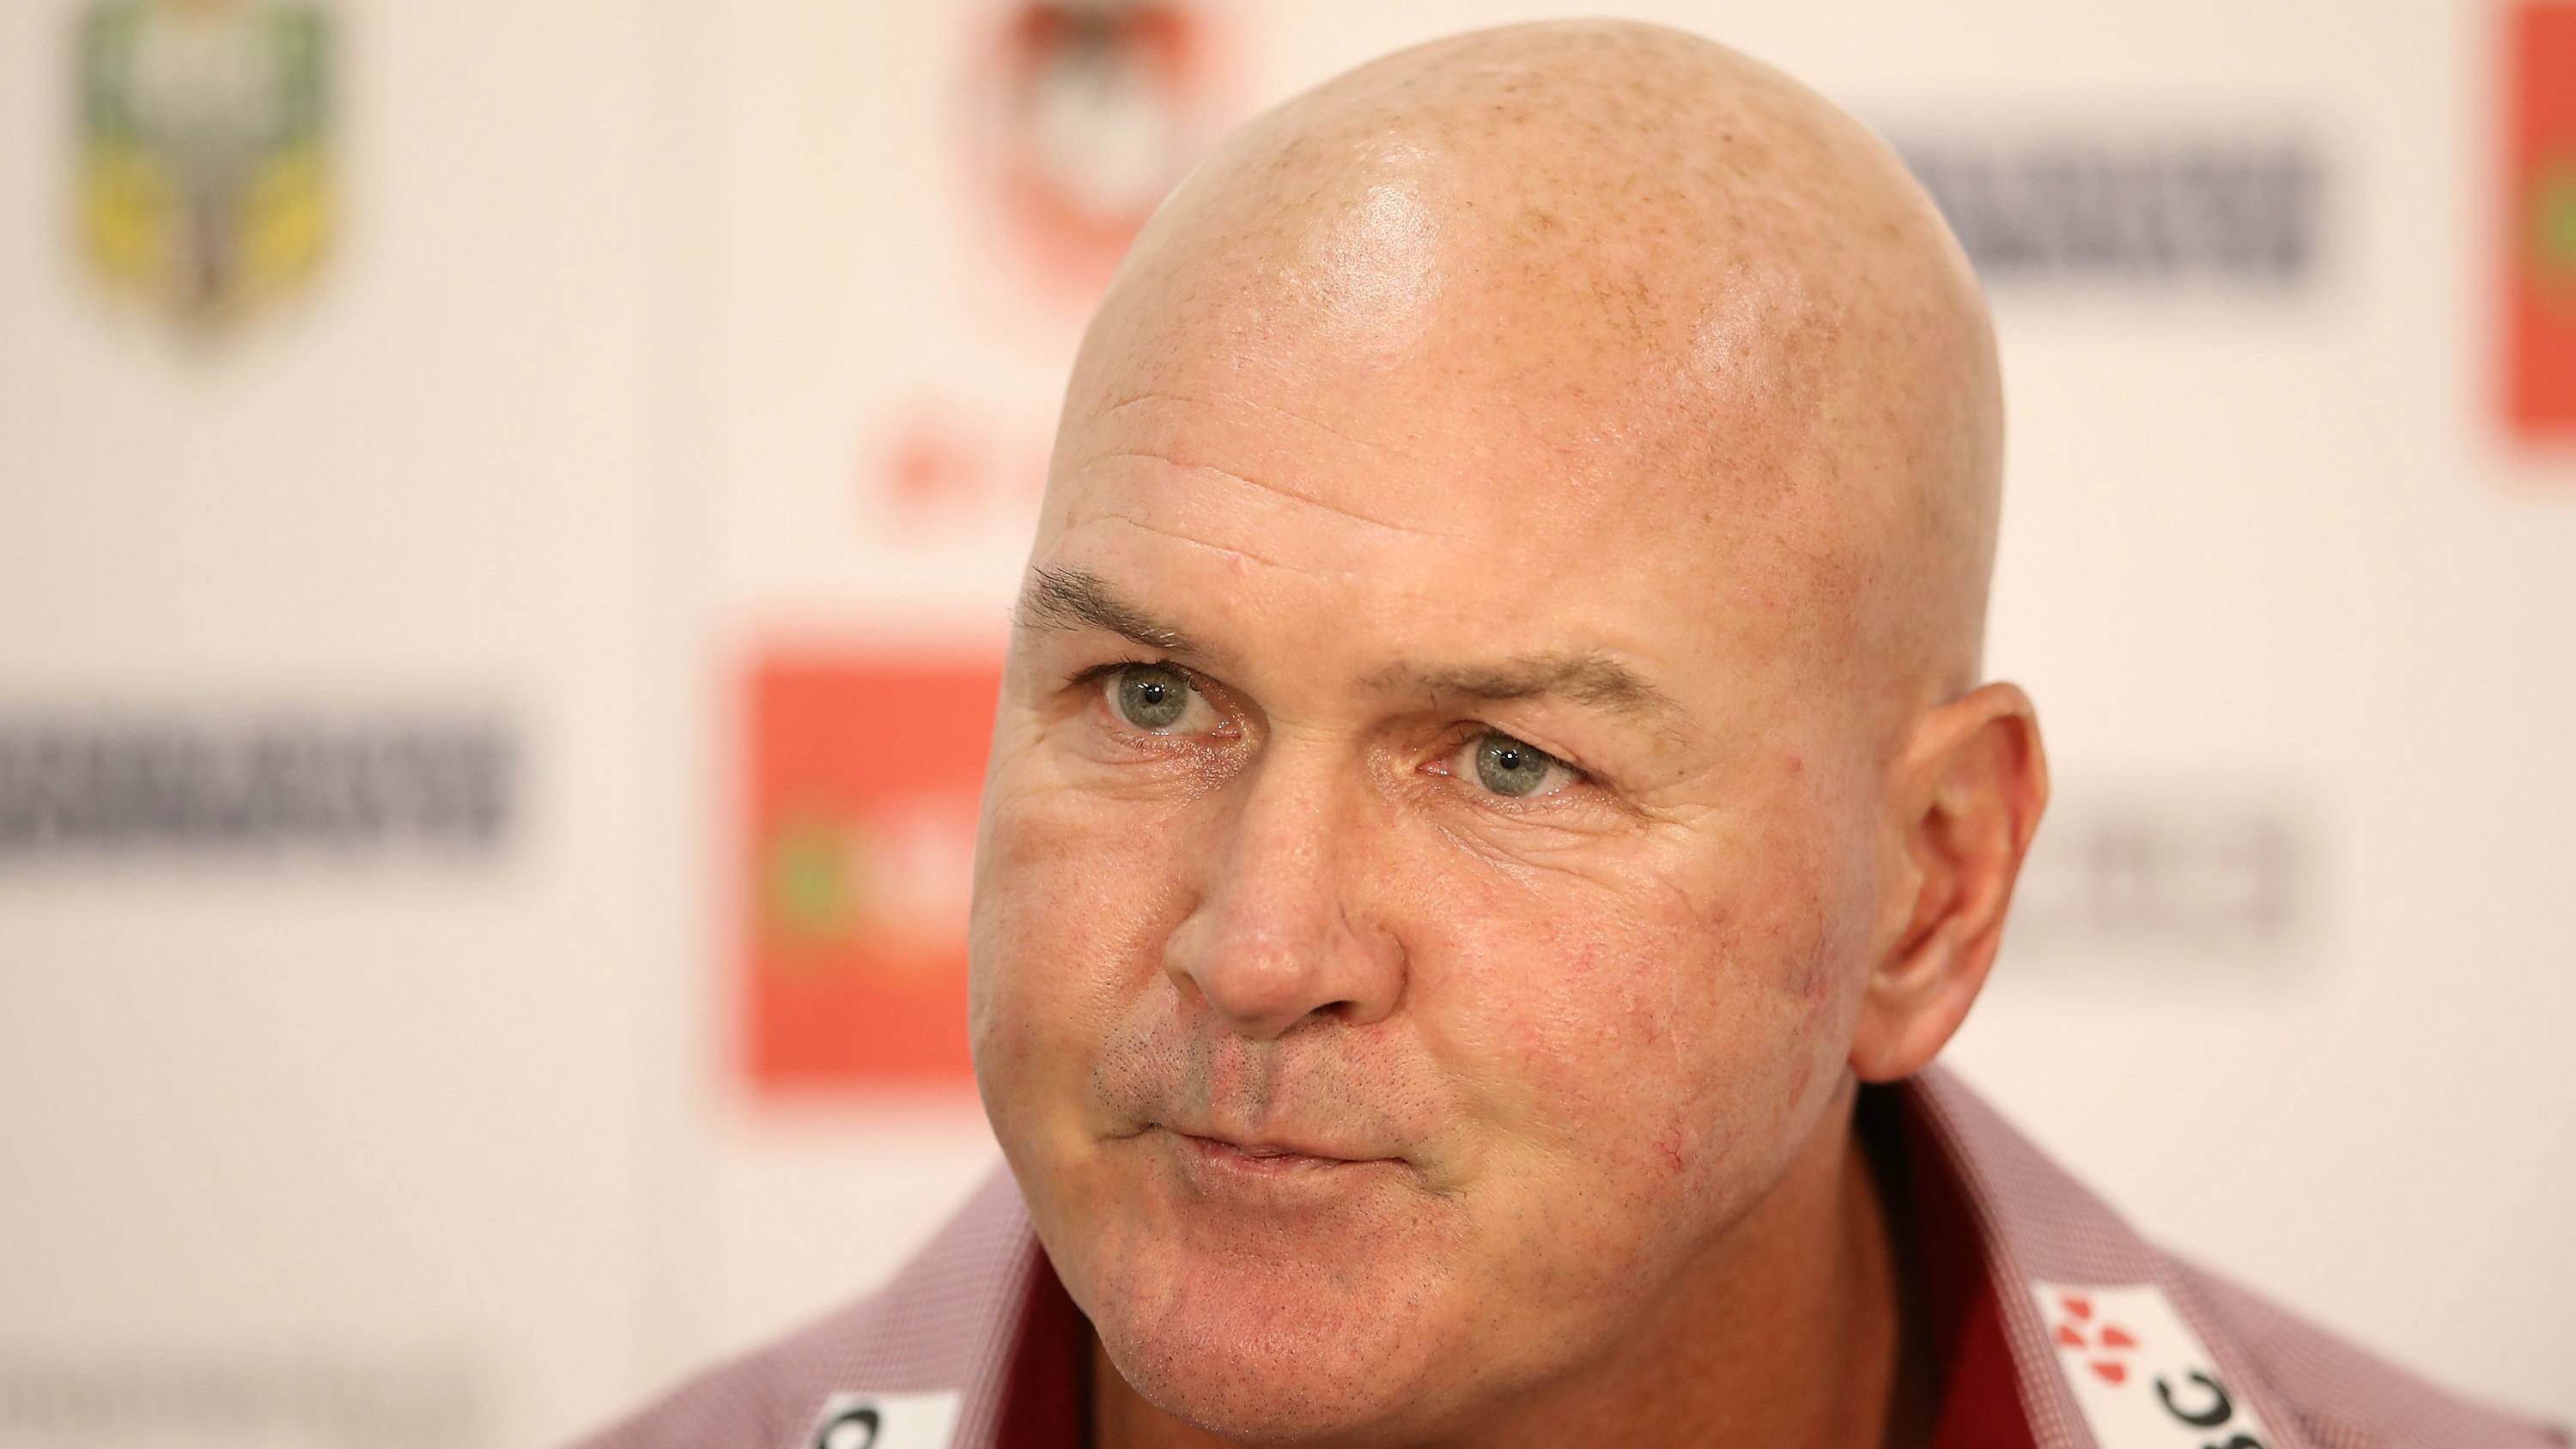 St George Illawarra coach Paul McGregor responds to criticism from Dragons fans